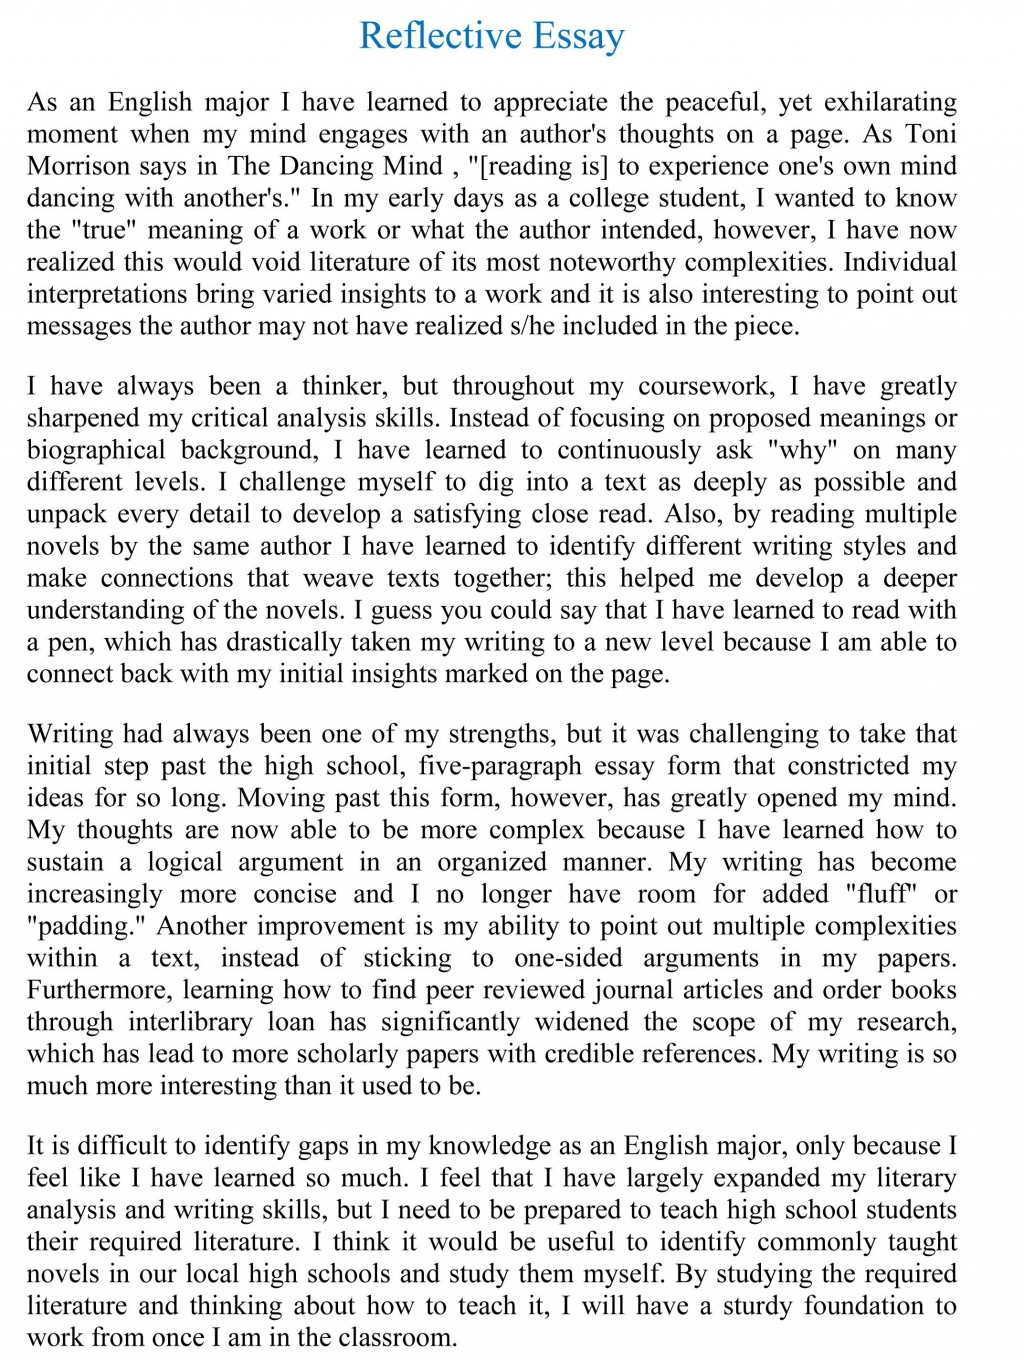 004 Essay Example Unforgettable Reflective Examples About Life Pdf High School Students Apa Large